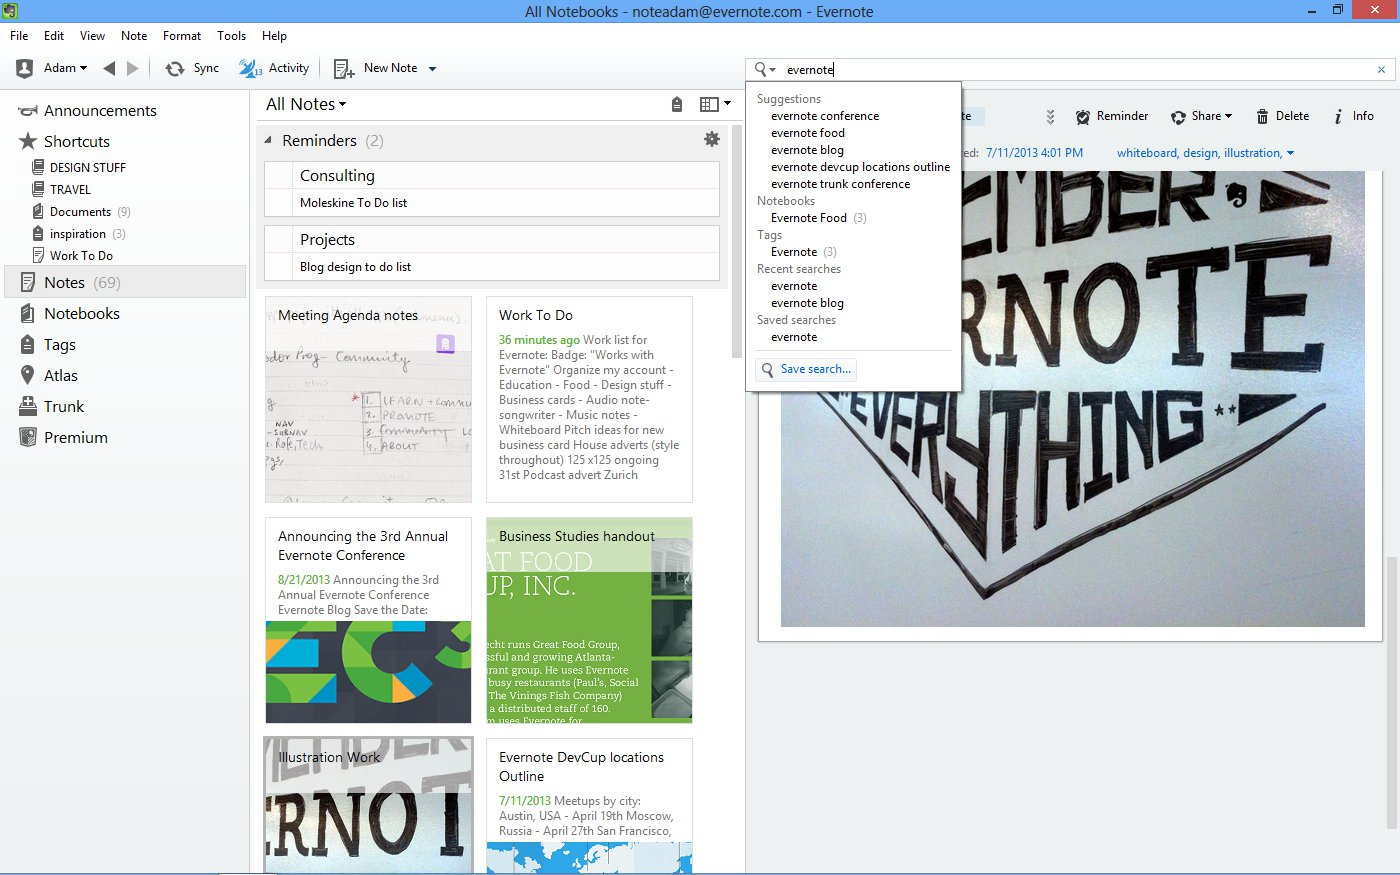 save search Evernote 5 for Windows launches with a flat design, reminders, related notes and shortcuts panel